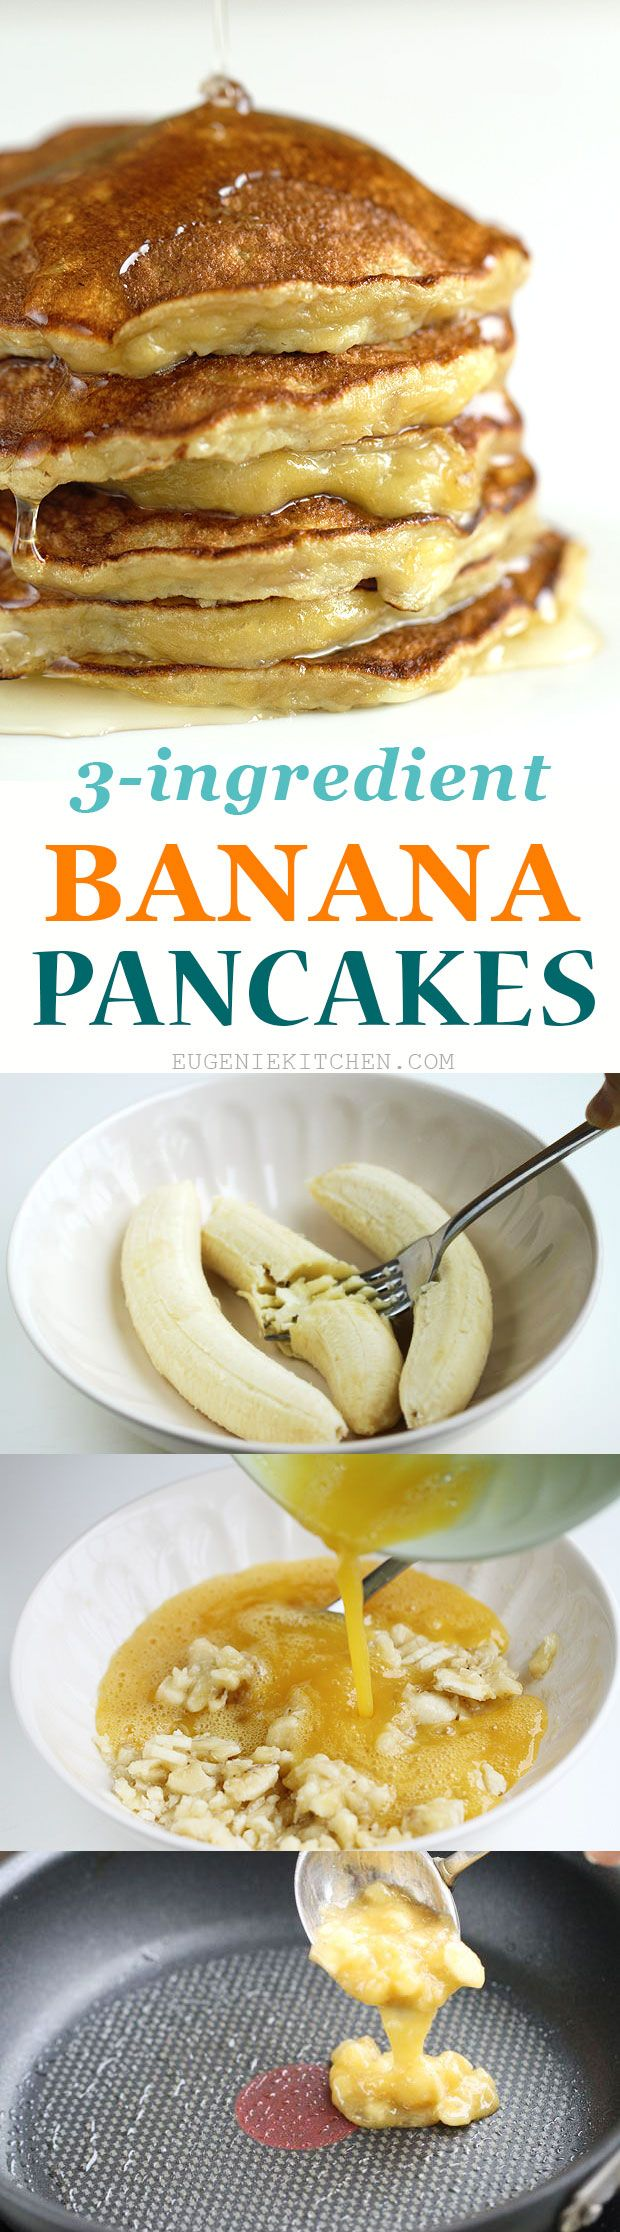 ... easy 3 ingredient flourless low calorie gluten free banana pancakes th